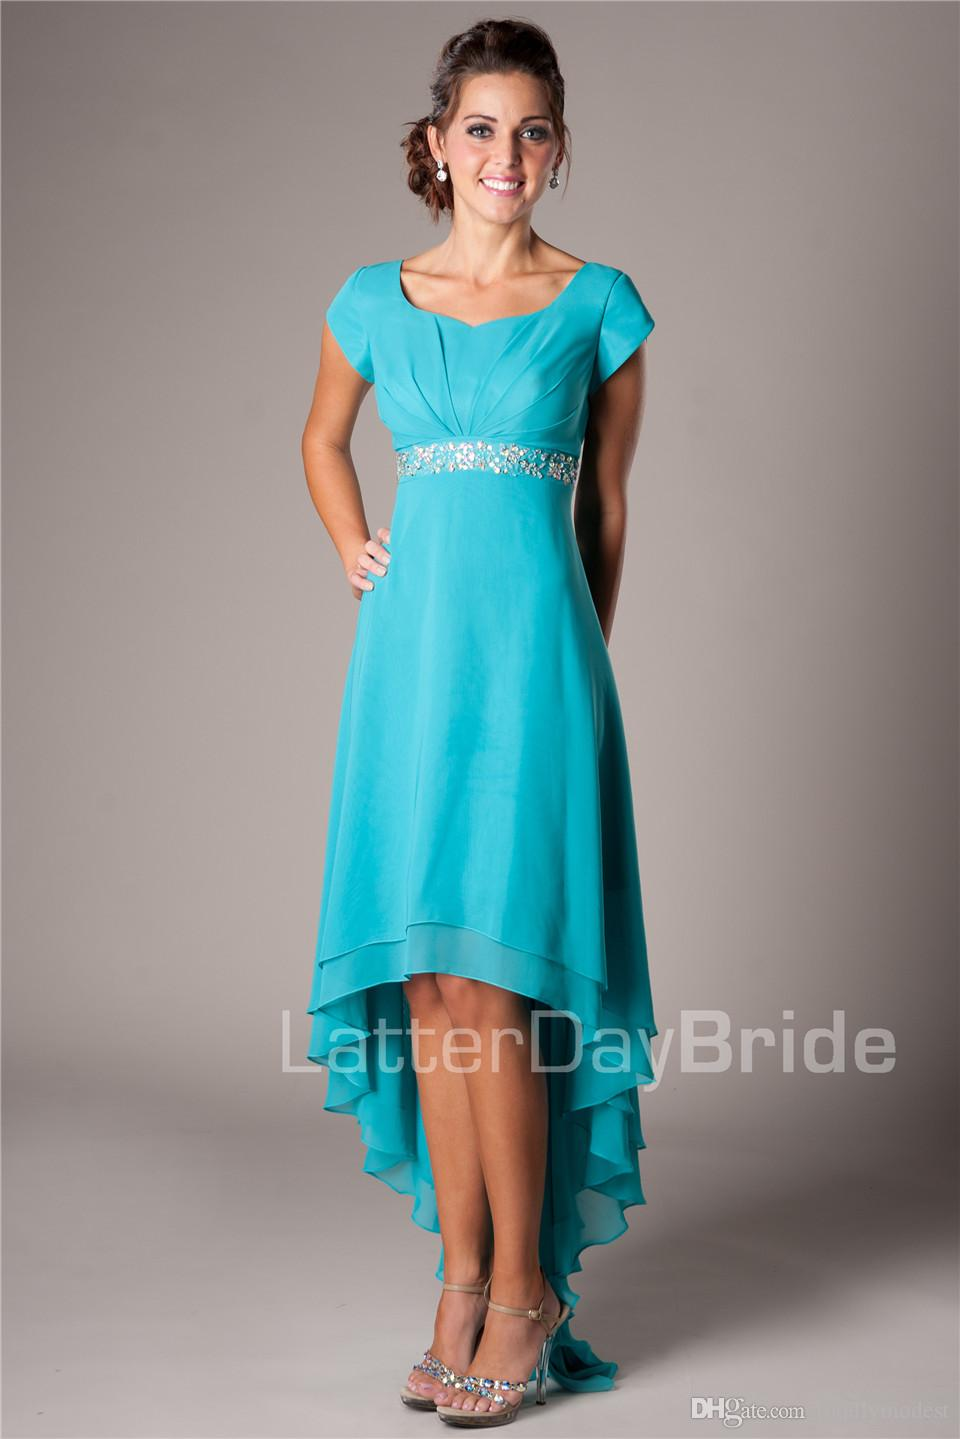 Summer teal high low chiffon beach modest bridesmaid dresses cap summer teal high low chiffon beach modest bridesmaid dresses cap sleeves short front long back maids of honor dresses wedding guests dresses bridesmaid ombrellifo Images